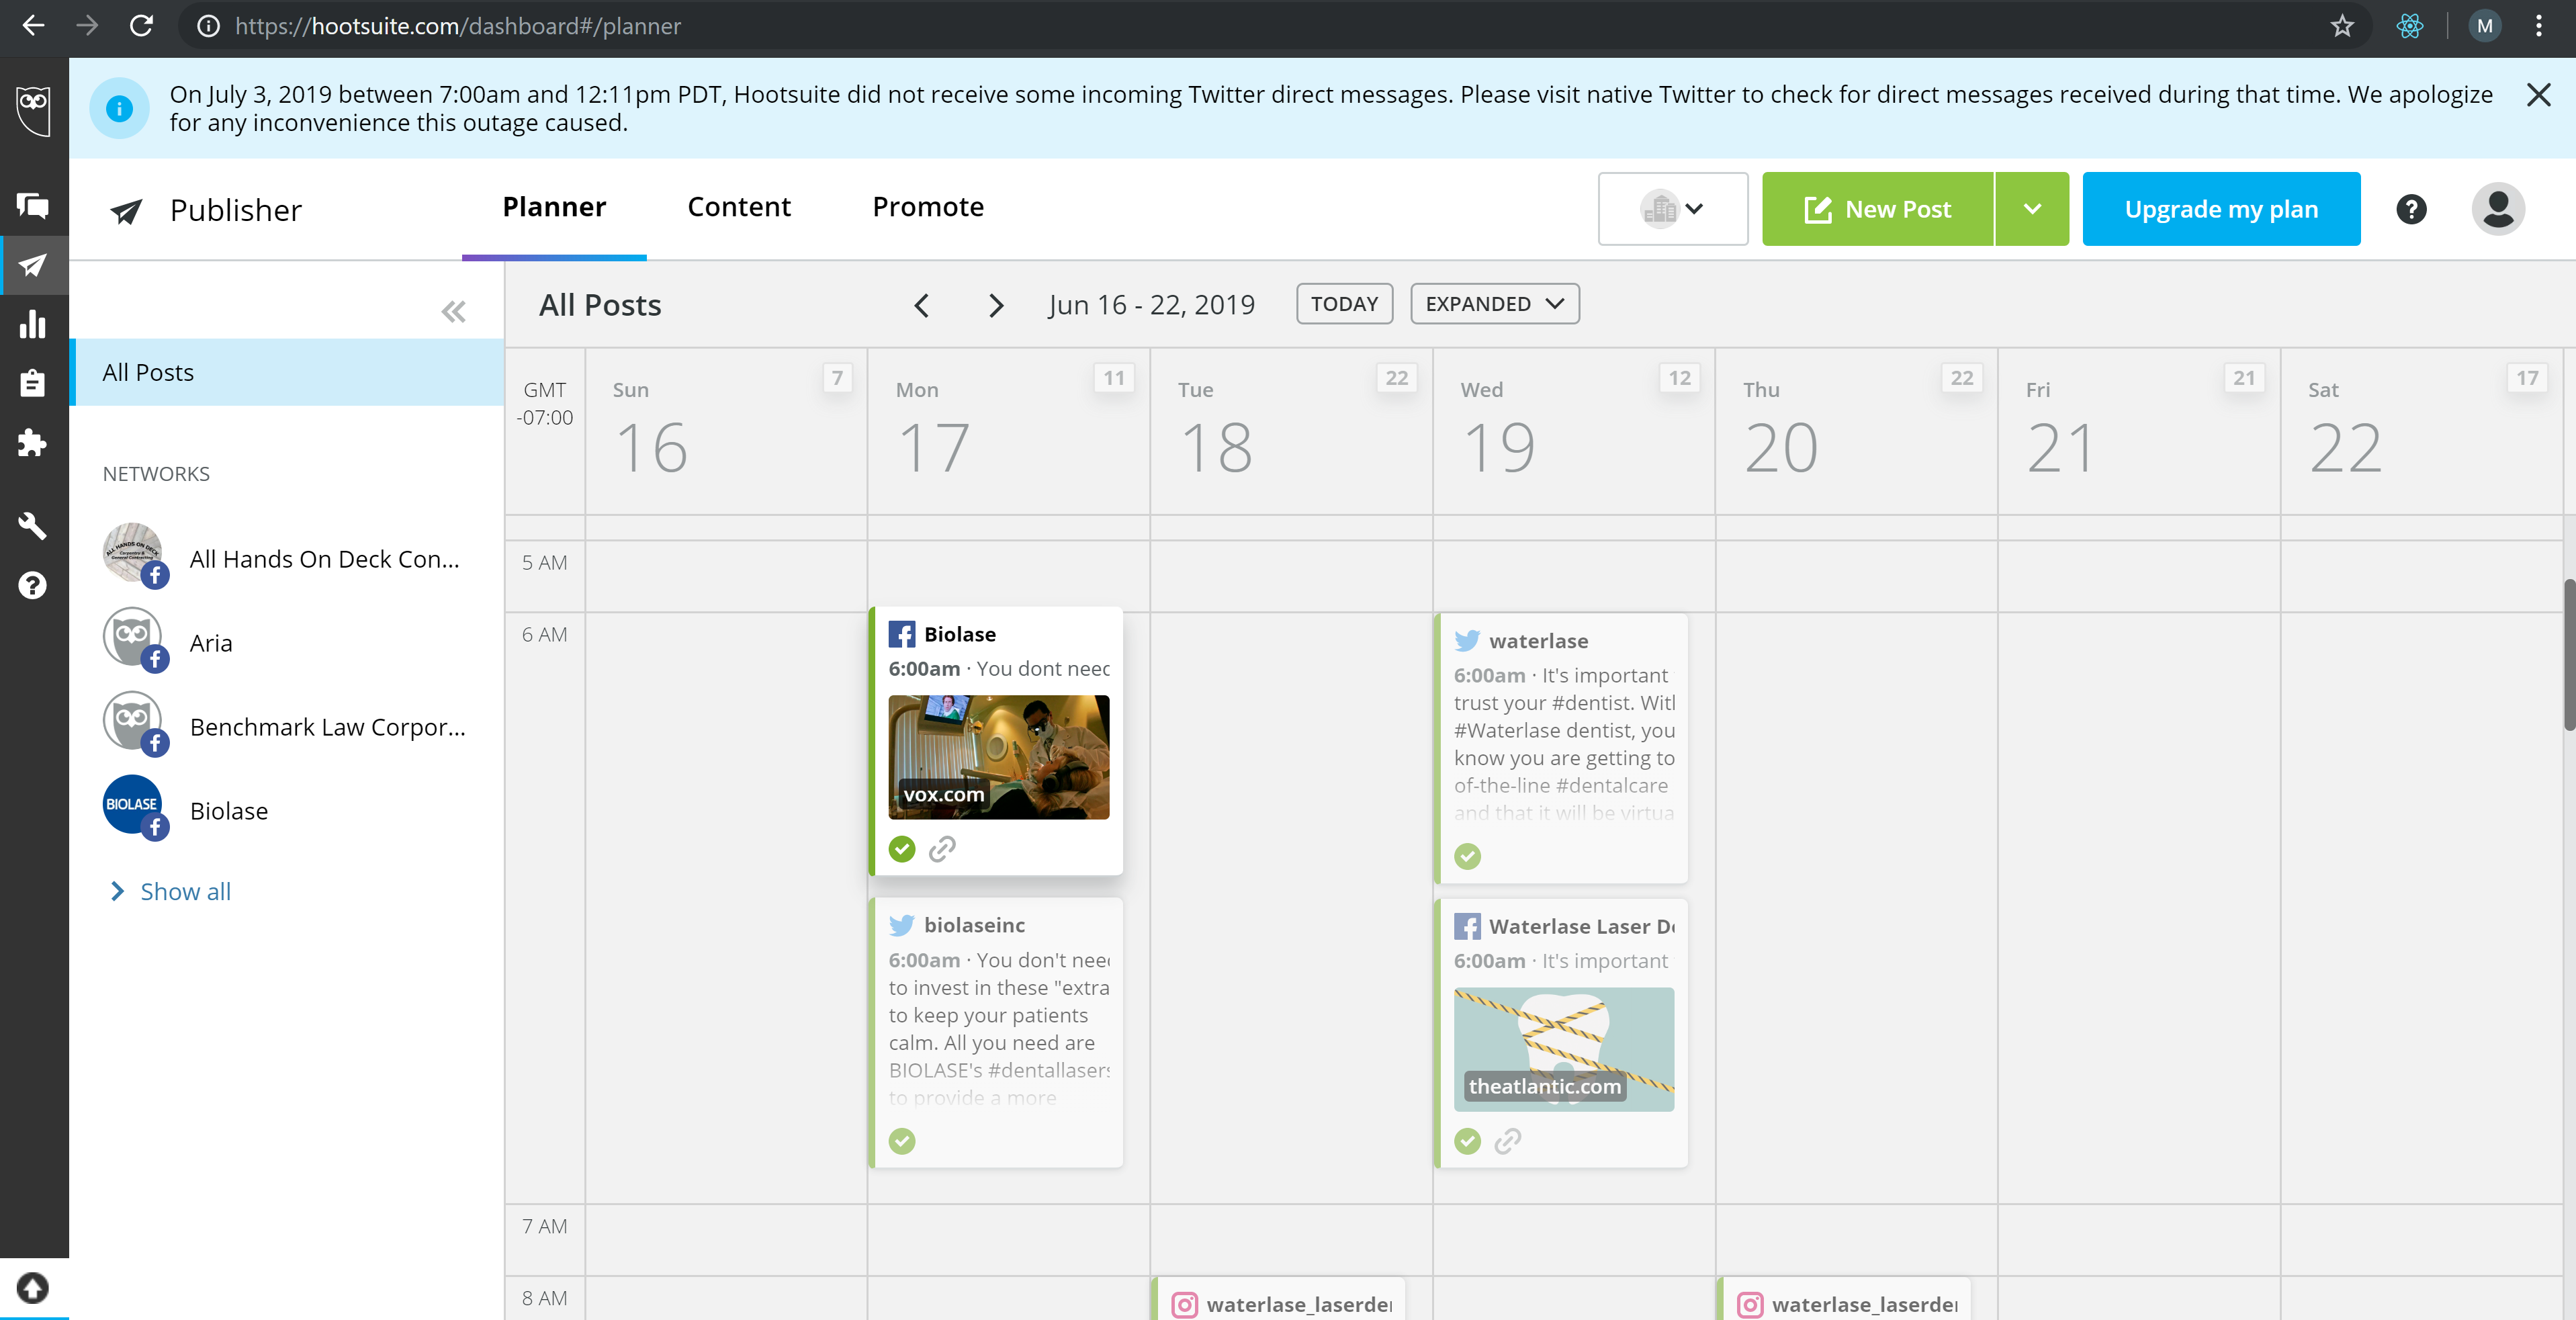 Biolase USA scheduling using Hootsuite for Facebook and Twitter under Legendary Social Media contracted by Feifei Digital Ltd | Monika Szucs